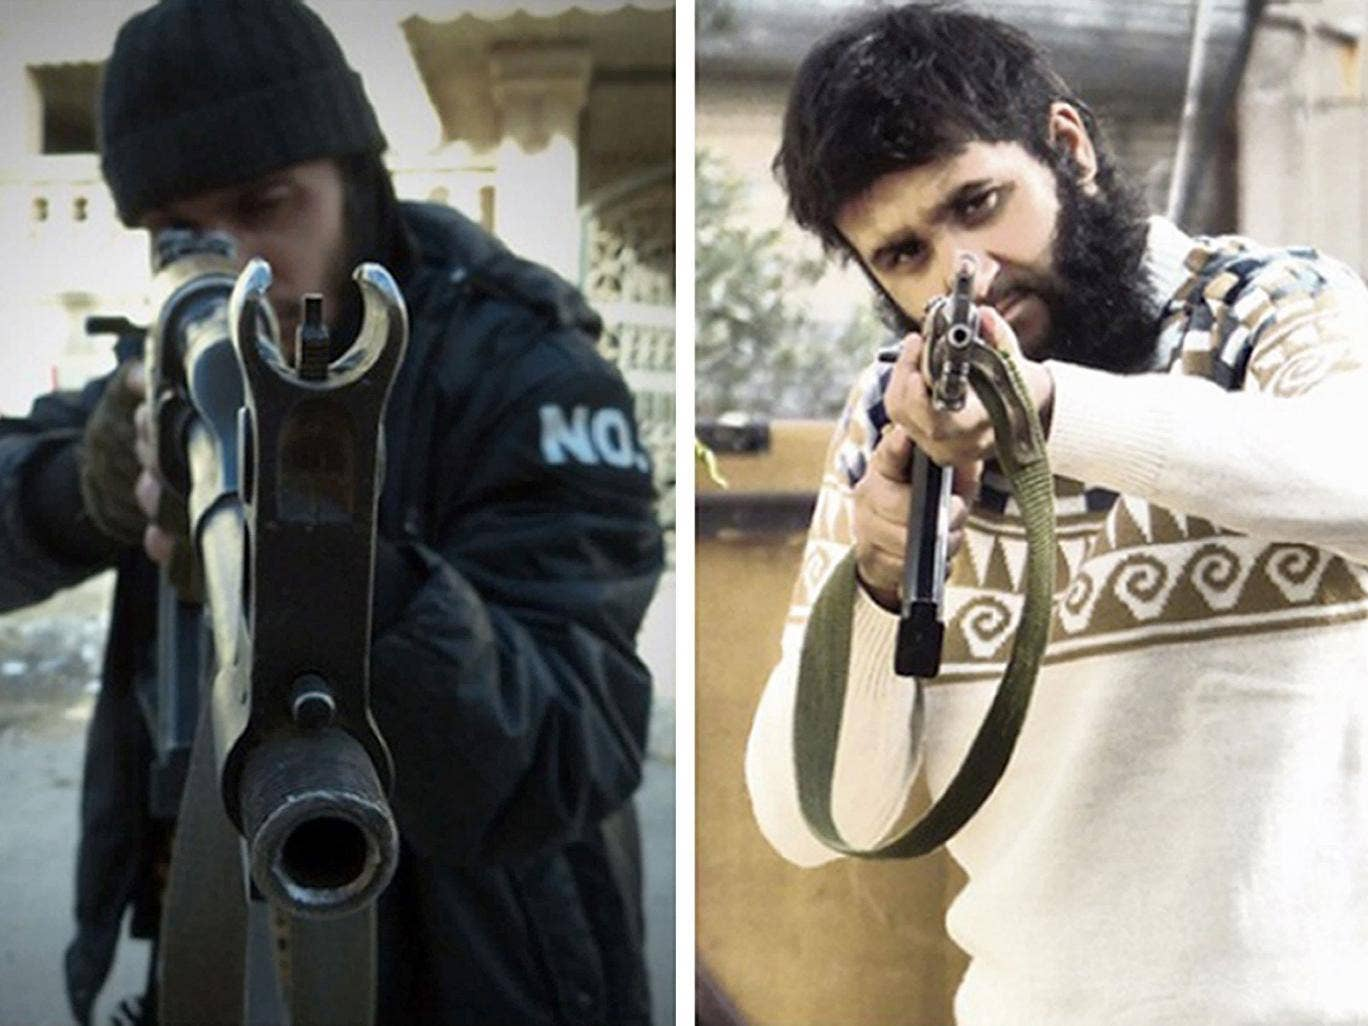 Mohammed Nahin Ahmed (left) and Yusuf Zubair Sarwar, both 22, who have admitted preparing to carry out terrorist acts after they travelled to Syria to join rebel fighters